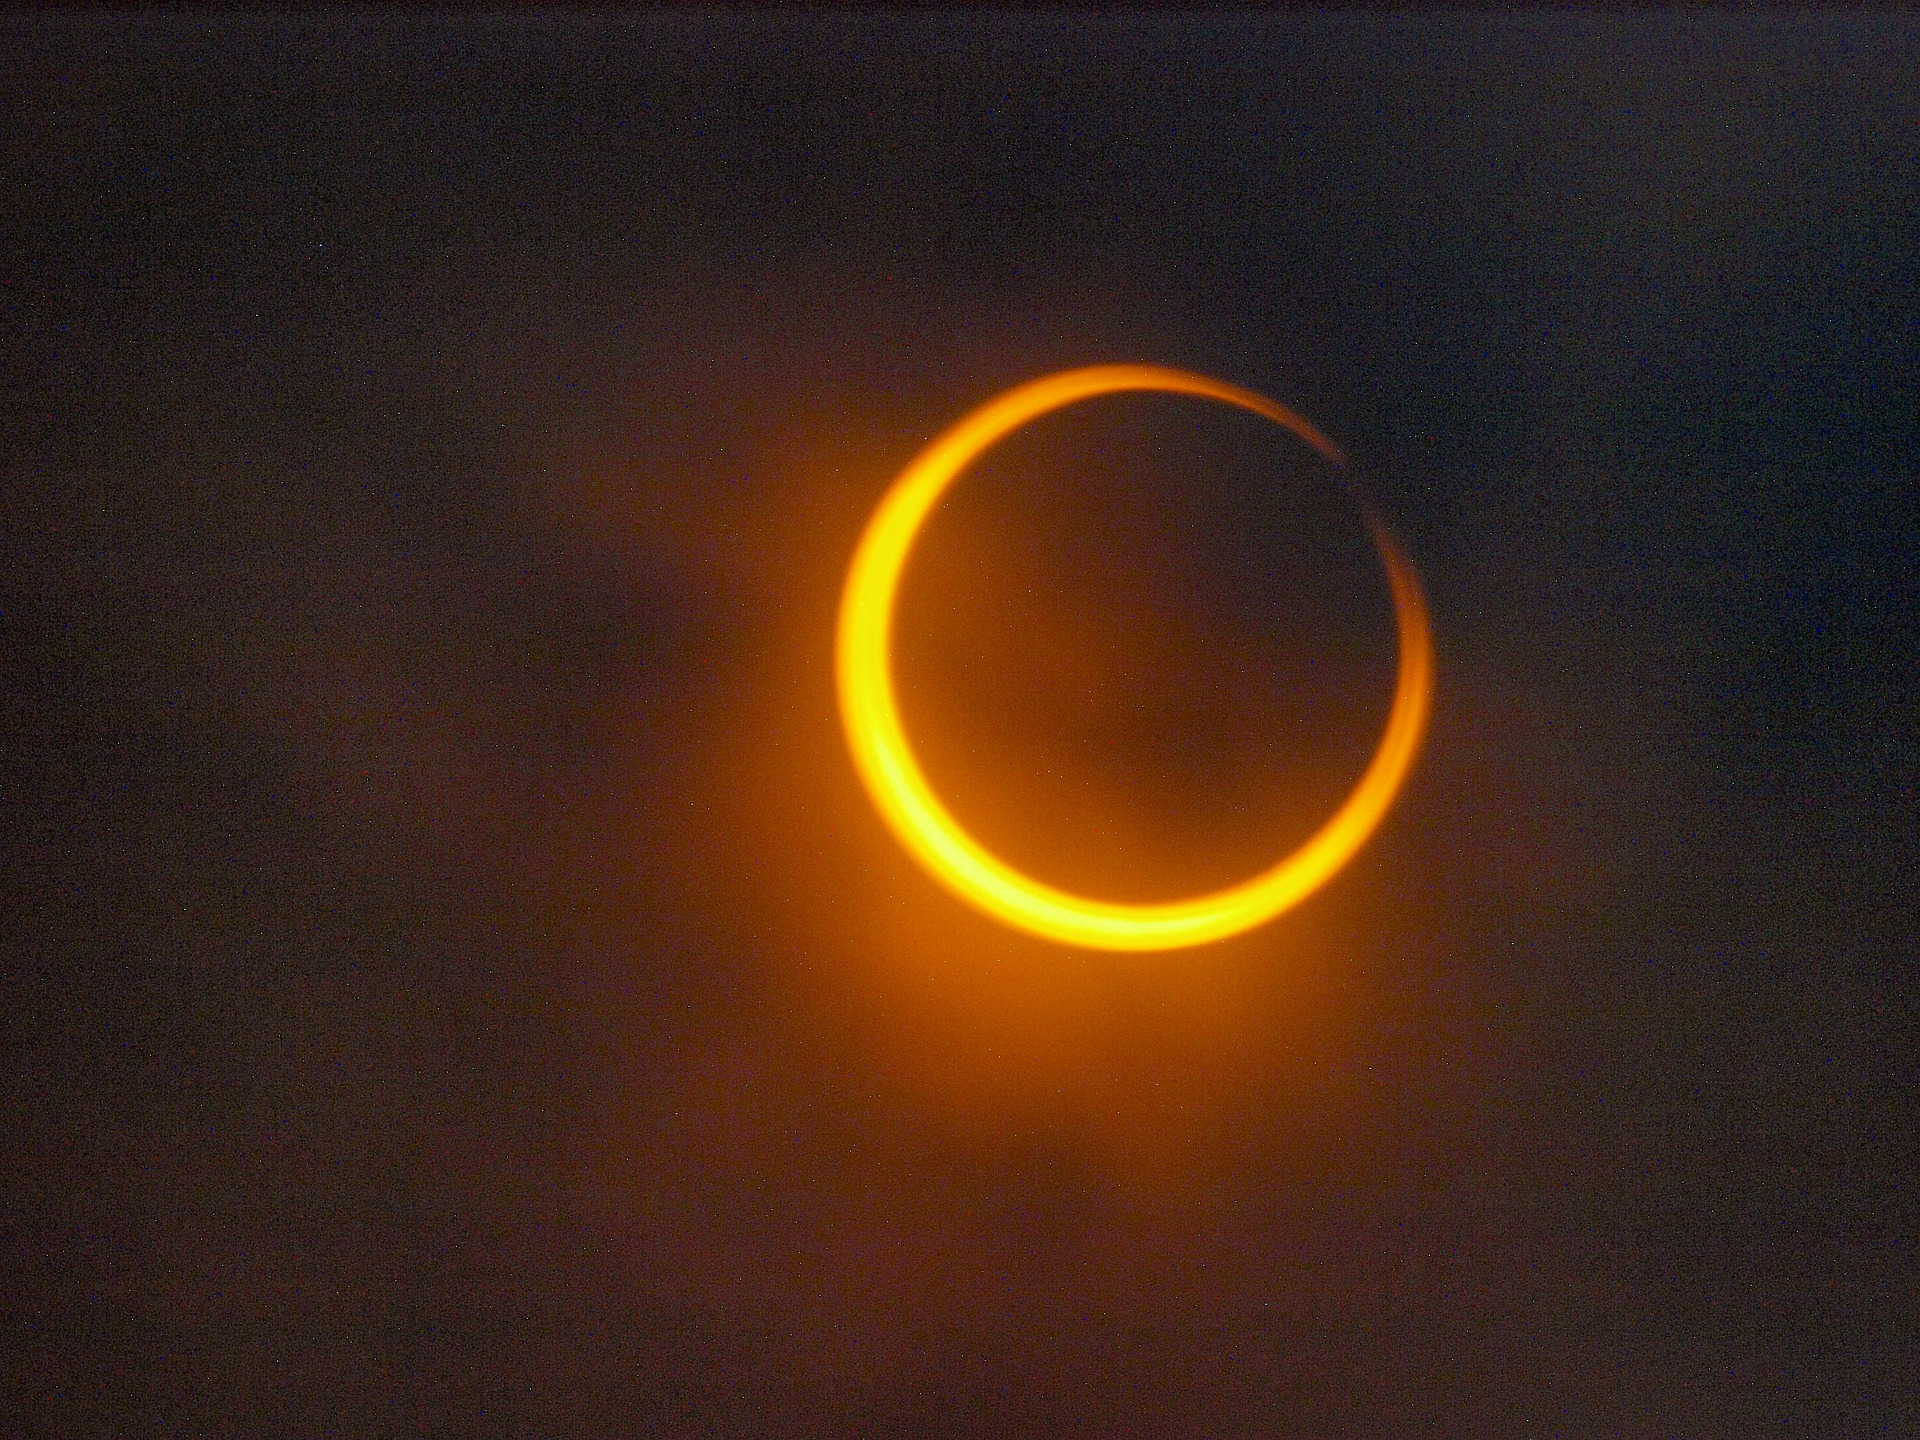 Annular Eclipse - Image by kaly from Pixabay